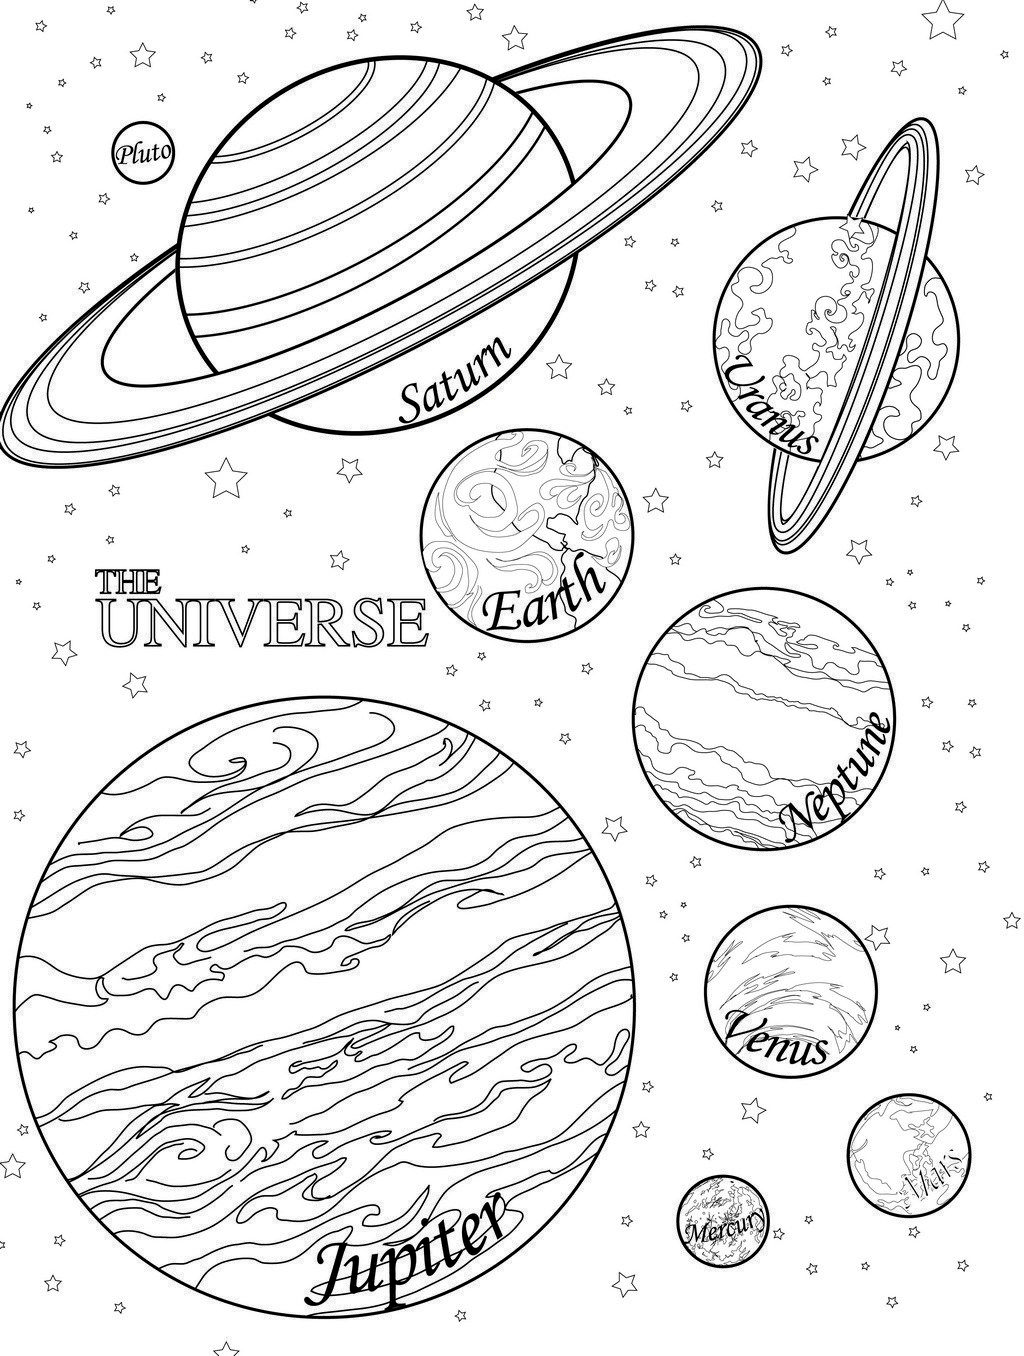 Planet Coloring Pages With The 9 Planets | Planet coloring page with ...